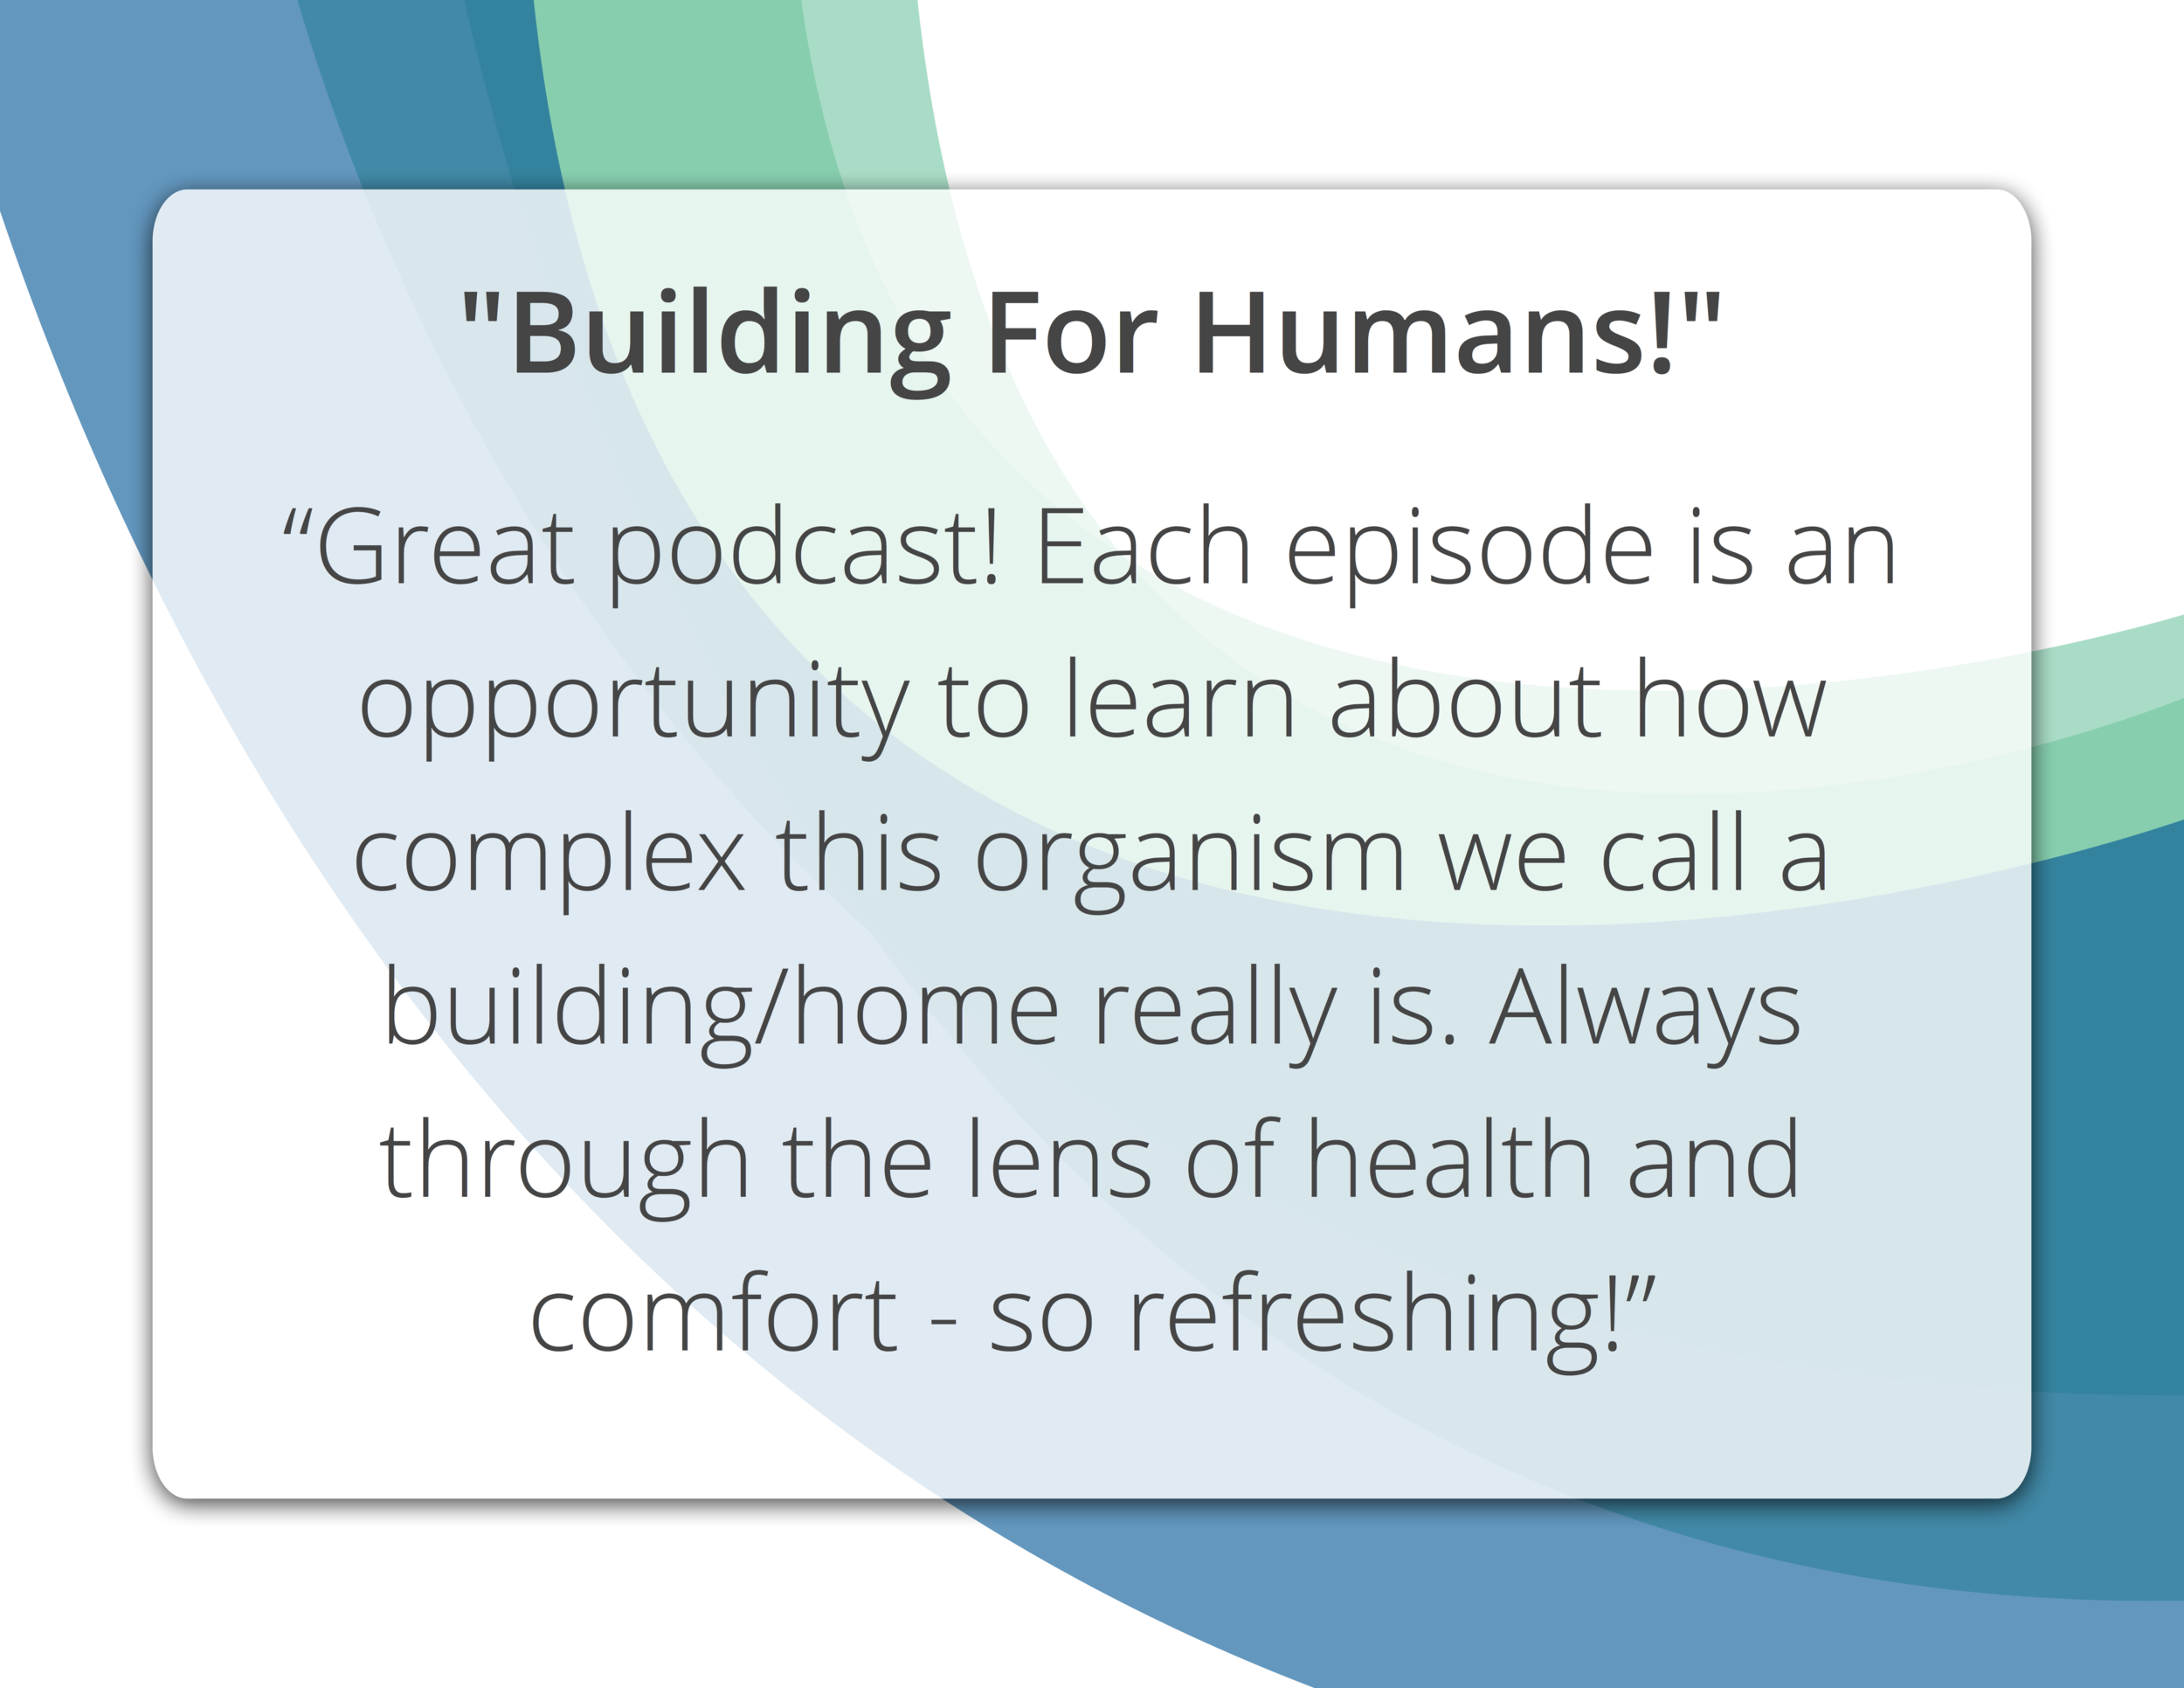 Building For Humans!